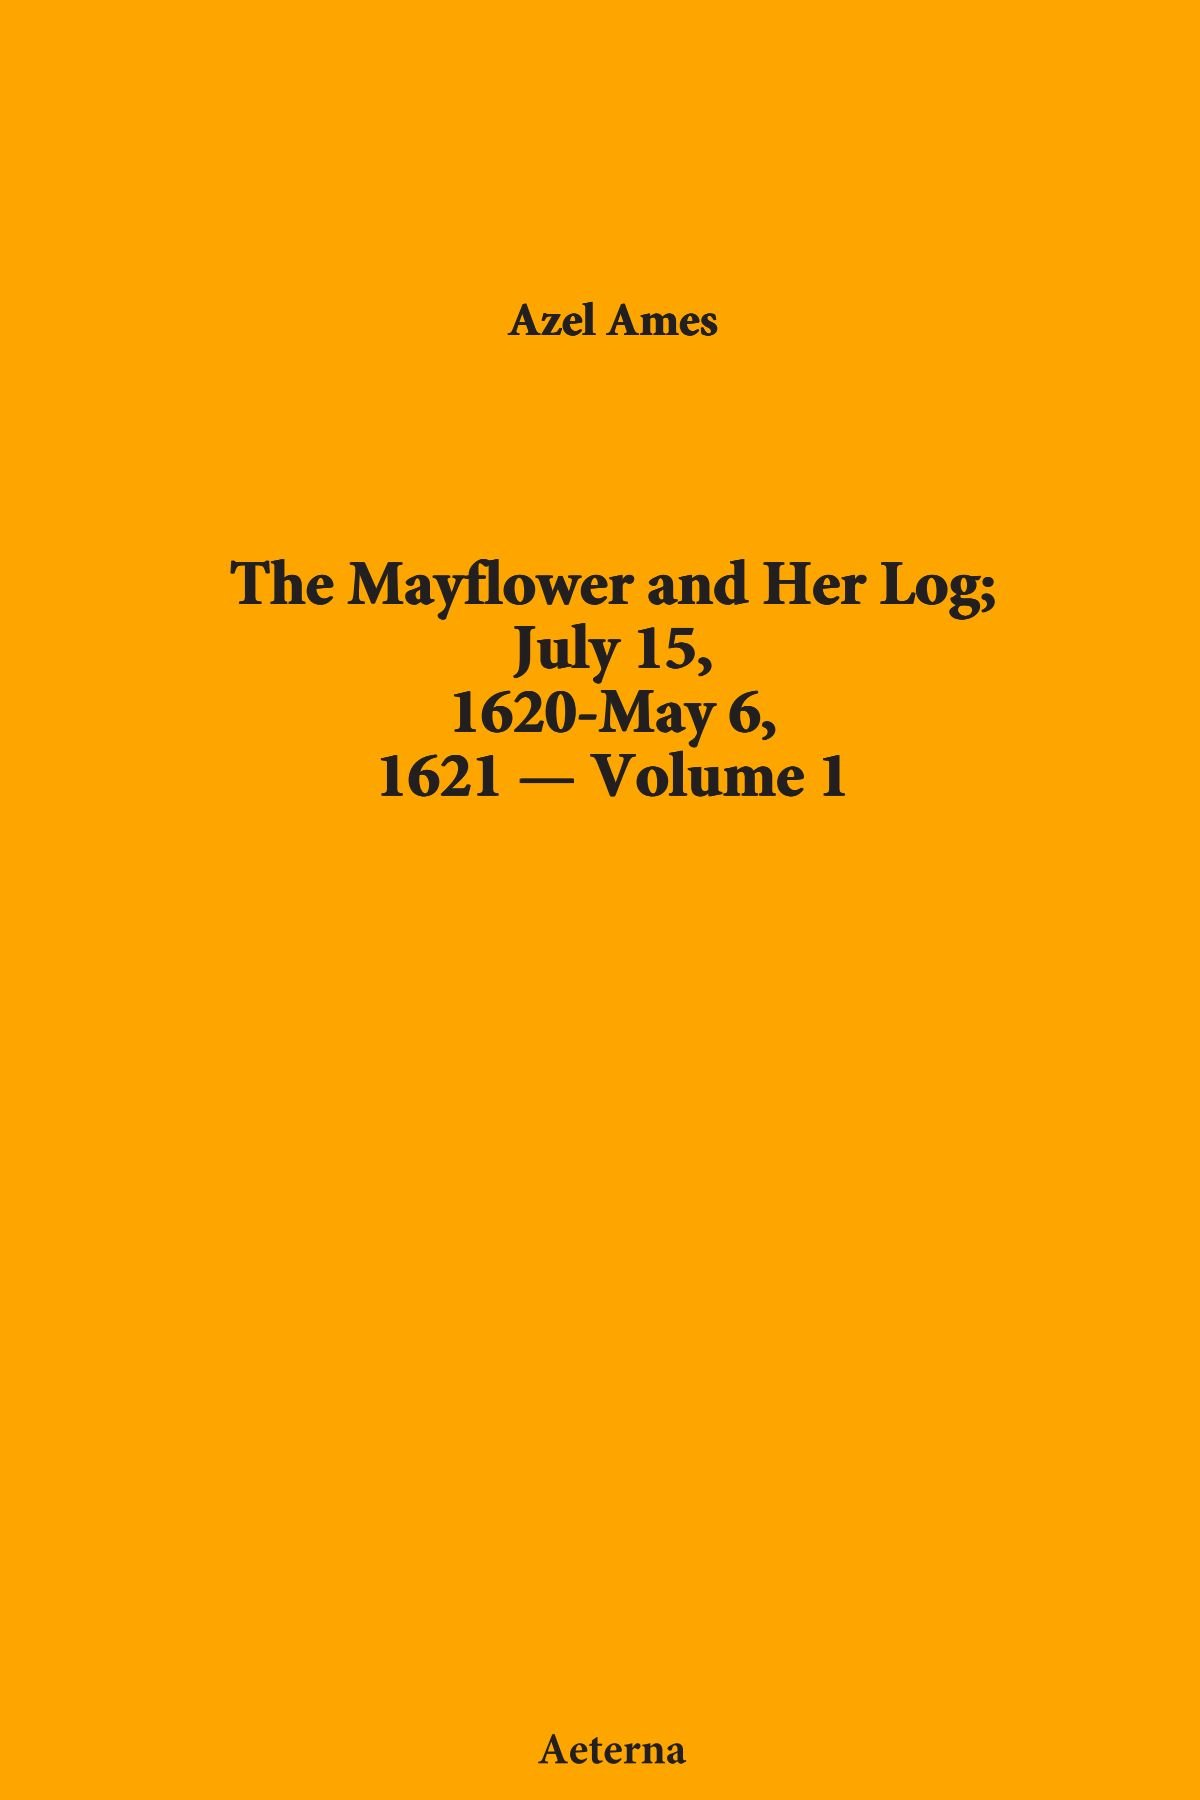 The Mayflower and Her Log; July 15, 1620-May 6, 1621 — Volume 1 PDF